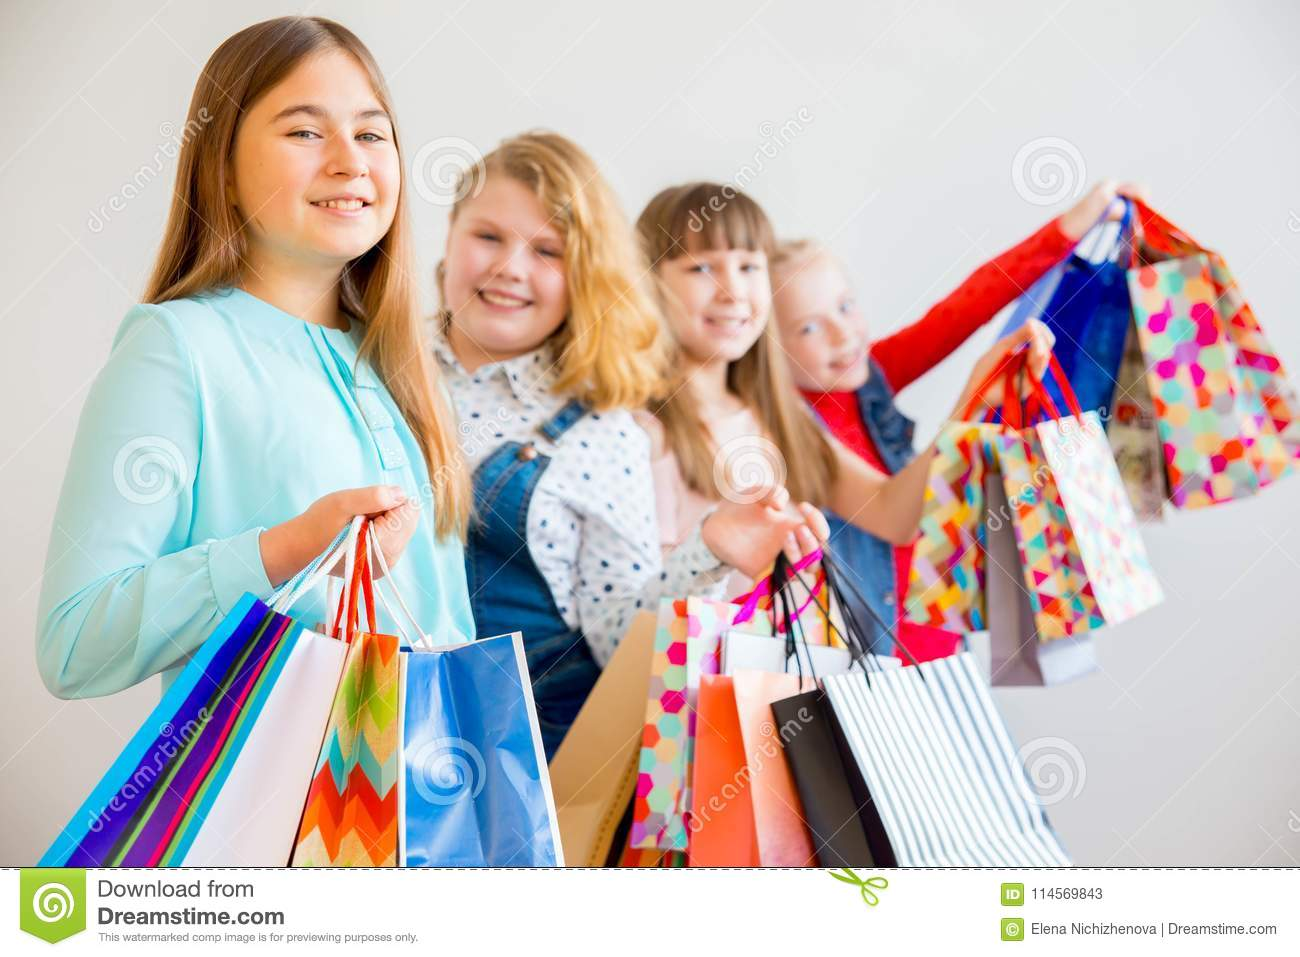 Pictures of teens shopping